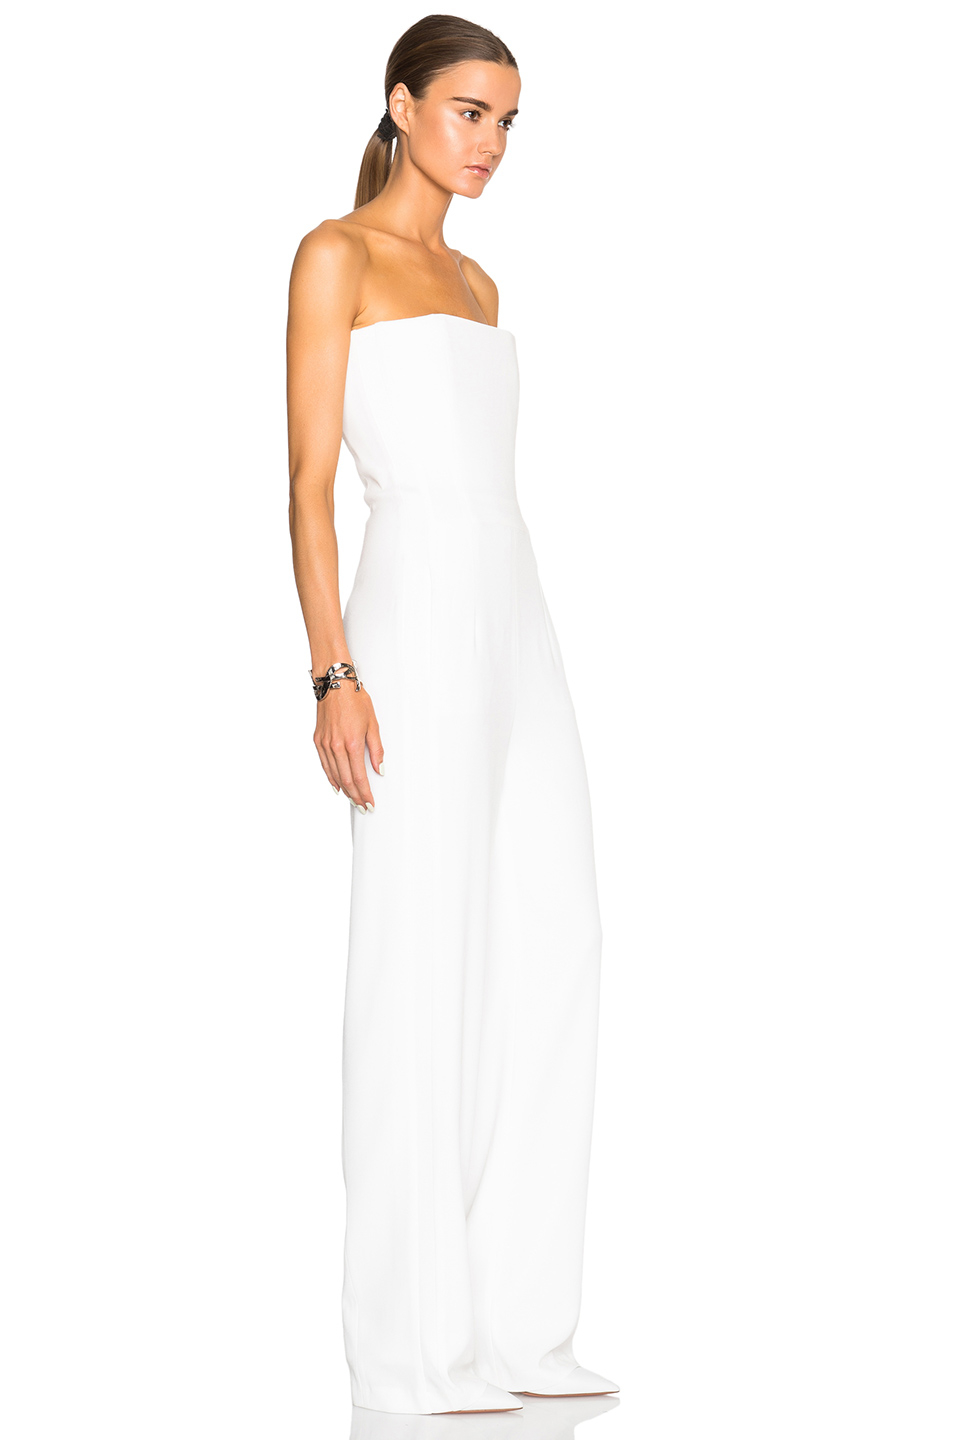 Galvan london Strapless Jumpsuit in White | Lyst